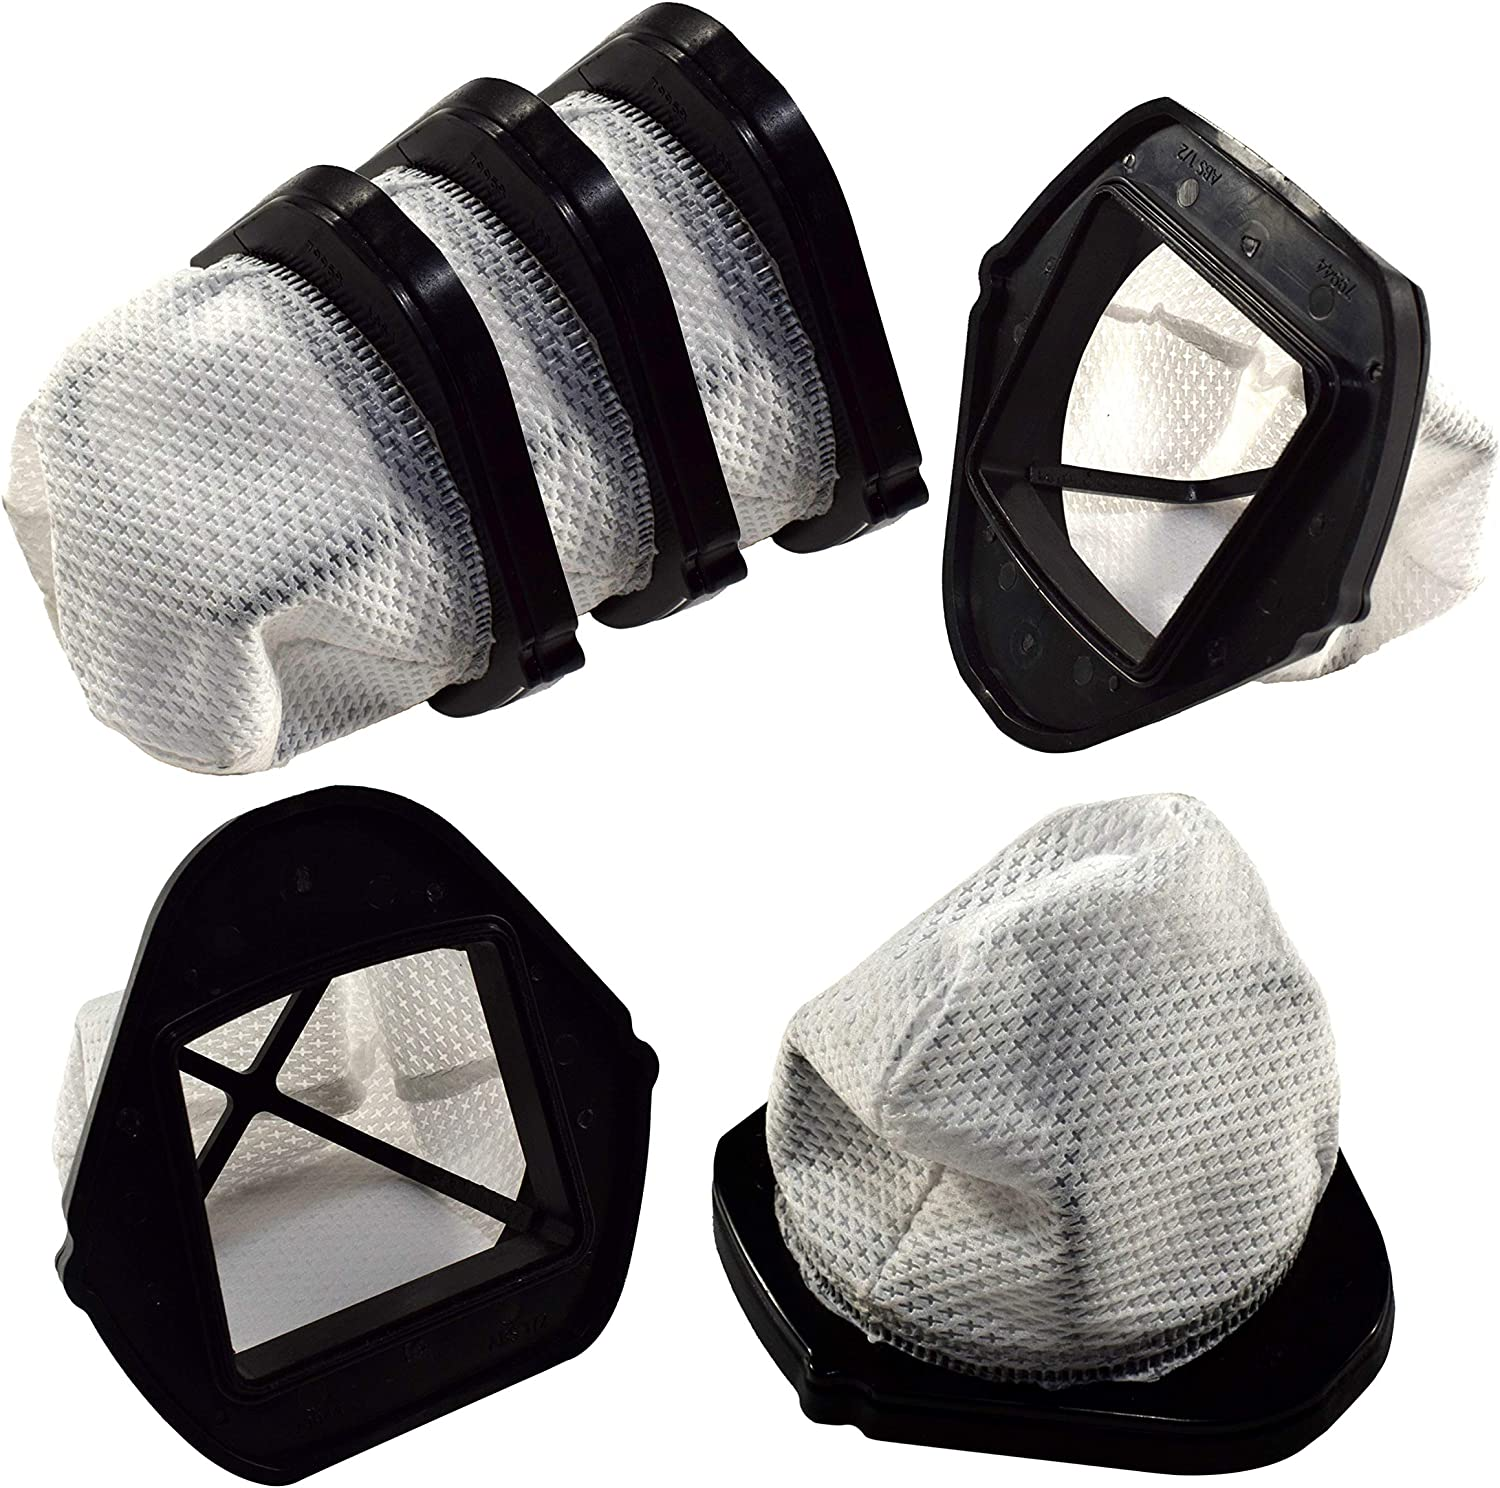 Home Care Shark Dust Cup Filter 3 PackFilter # XSB726N